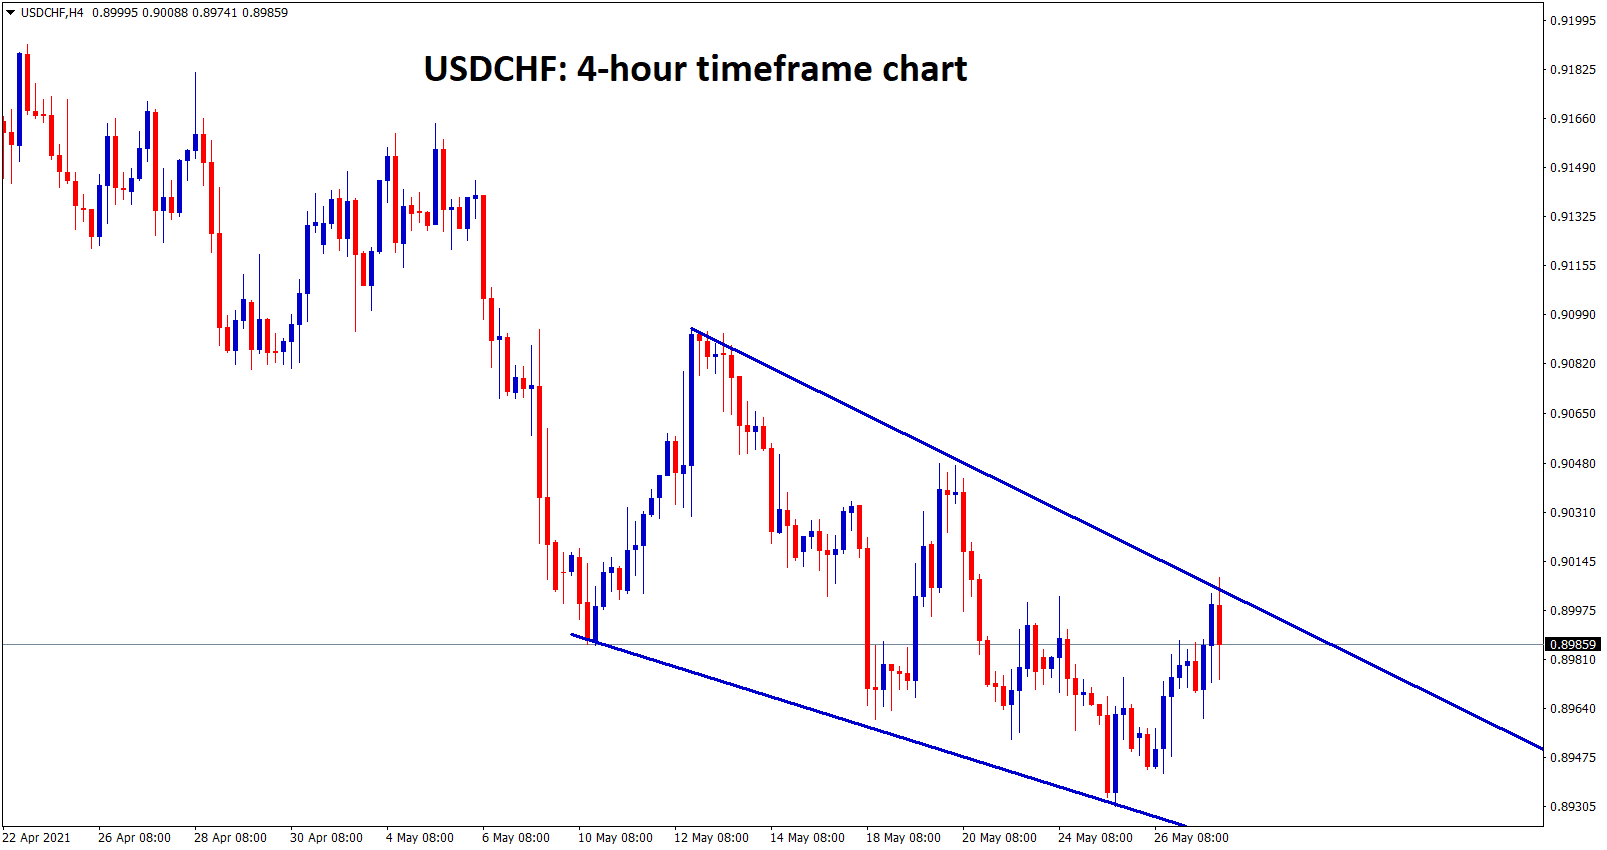 USDCHF formed a falling wedge pattern